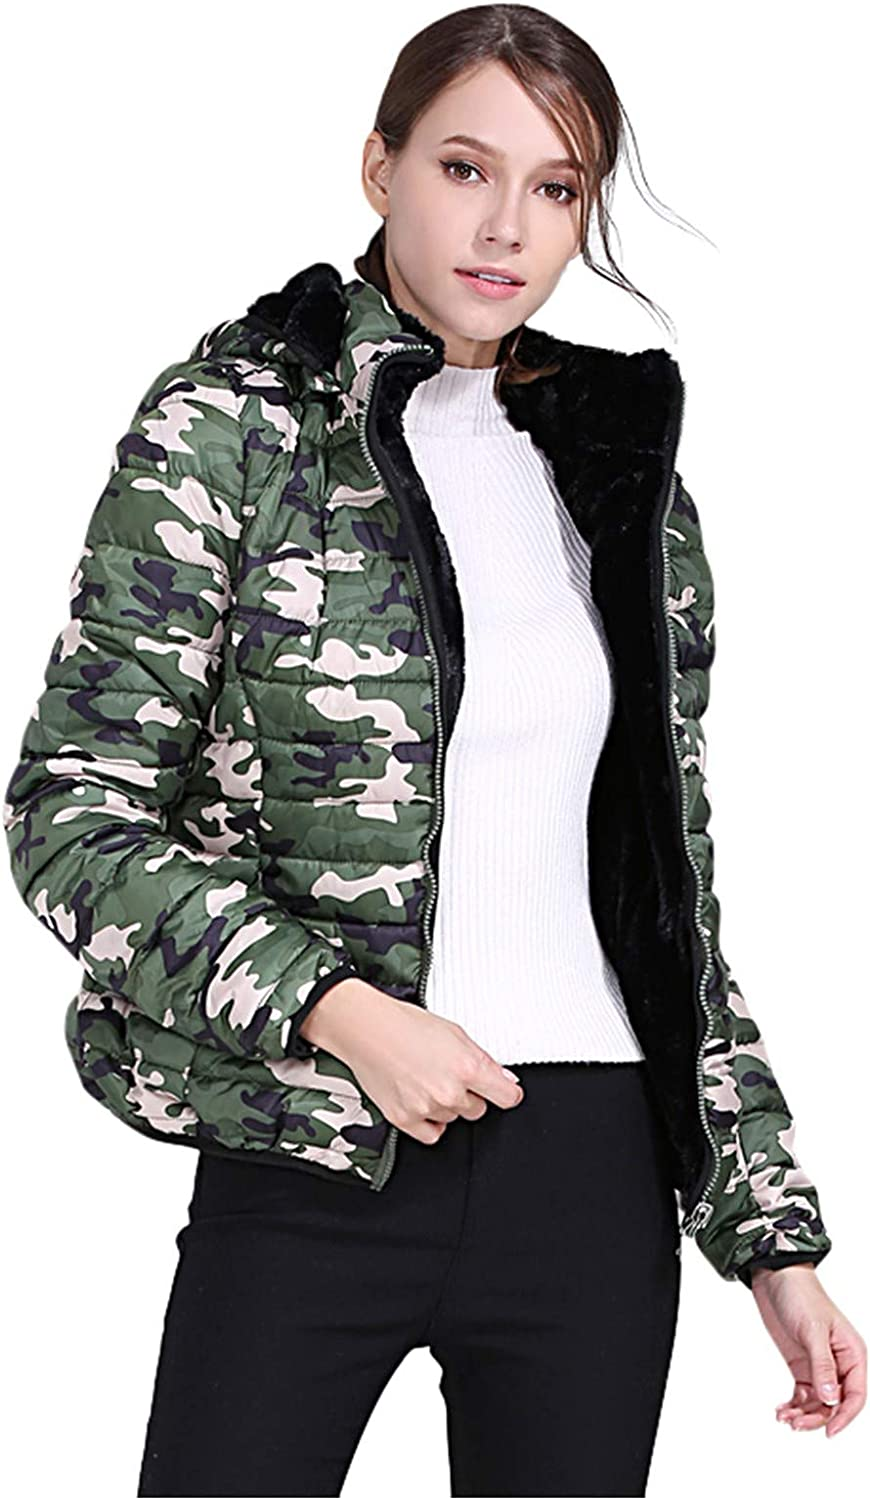 IZHH Ladies Short Jacket Many Max 53% OFF popular brands Camouflage Outwear Warm Cot Coat Casual